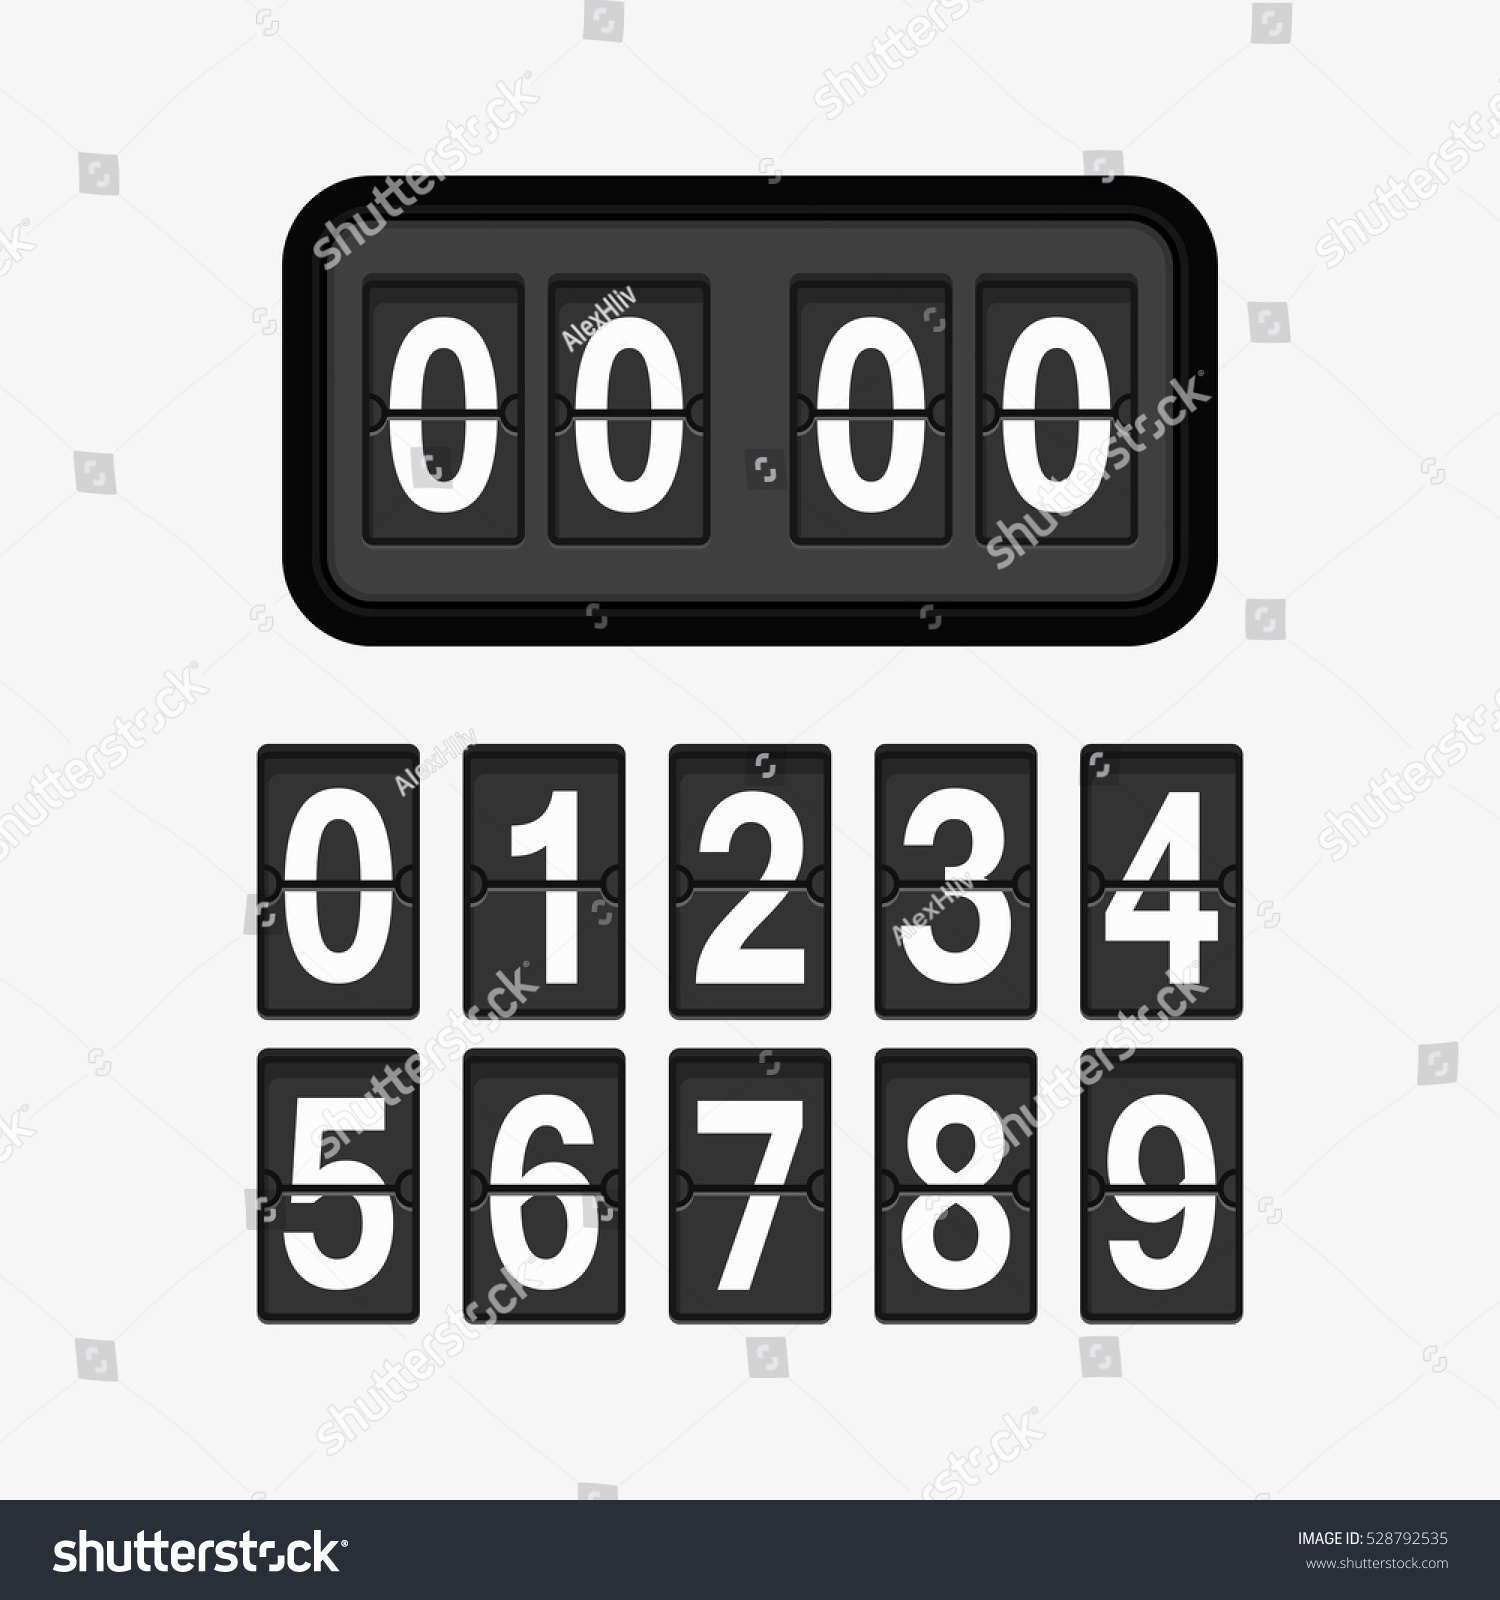 Analog Flip Clock Counter Retro Design Stock Vector HD (Royalty Free ...